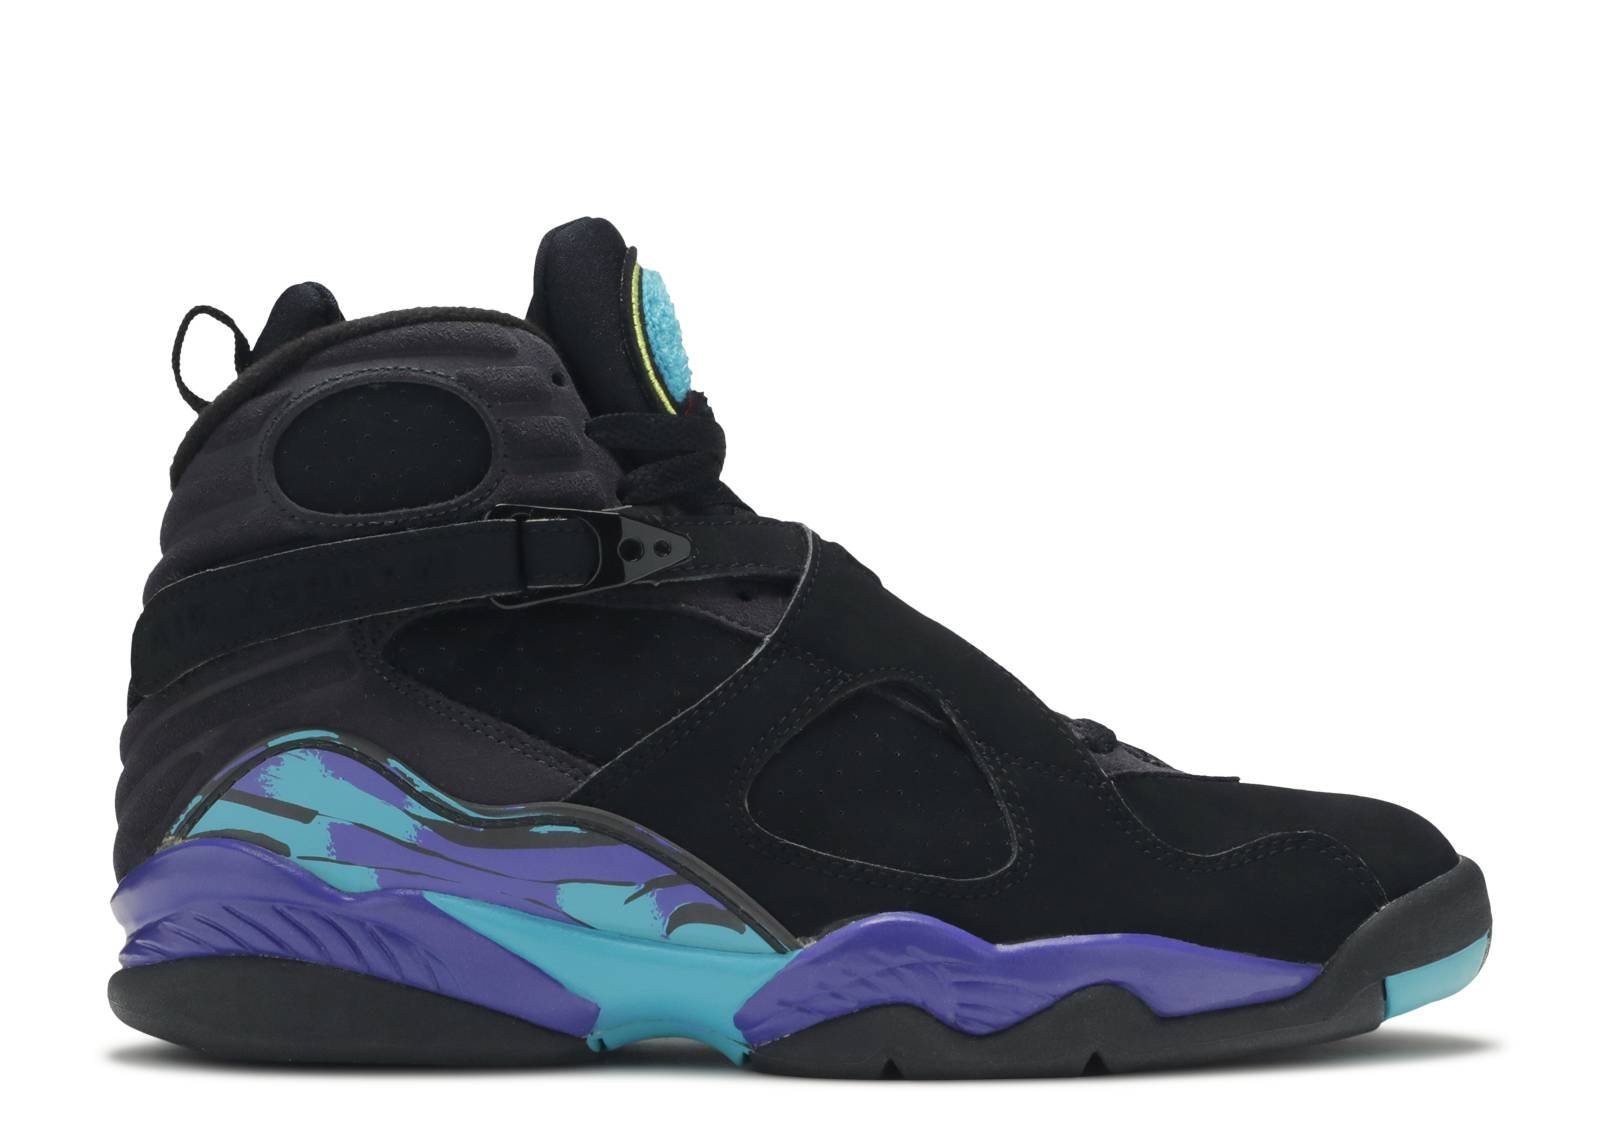 8b8a83c30d2eab Air Jordan 8 Retro